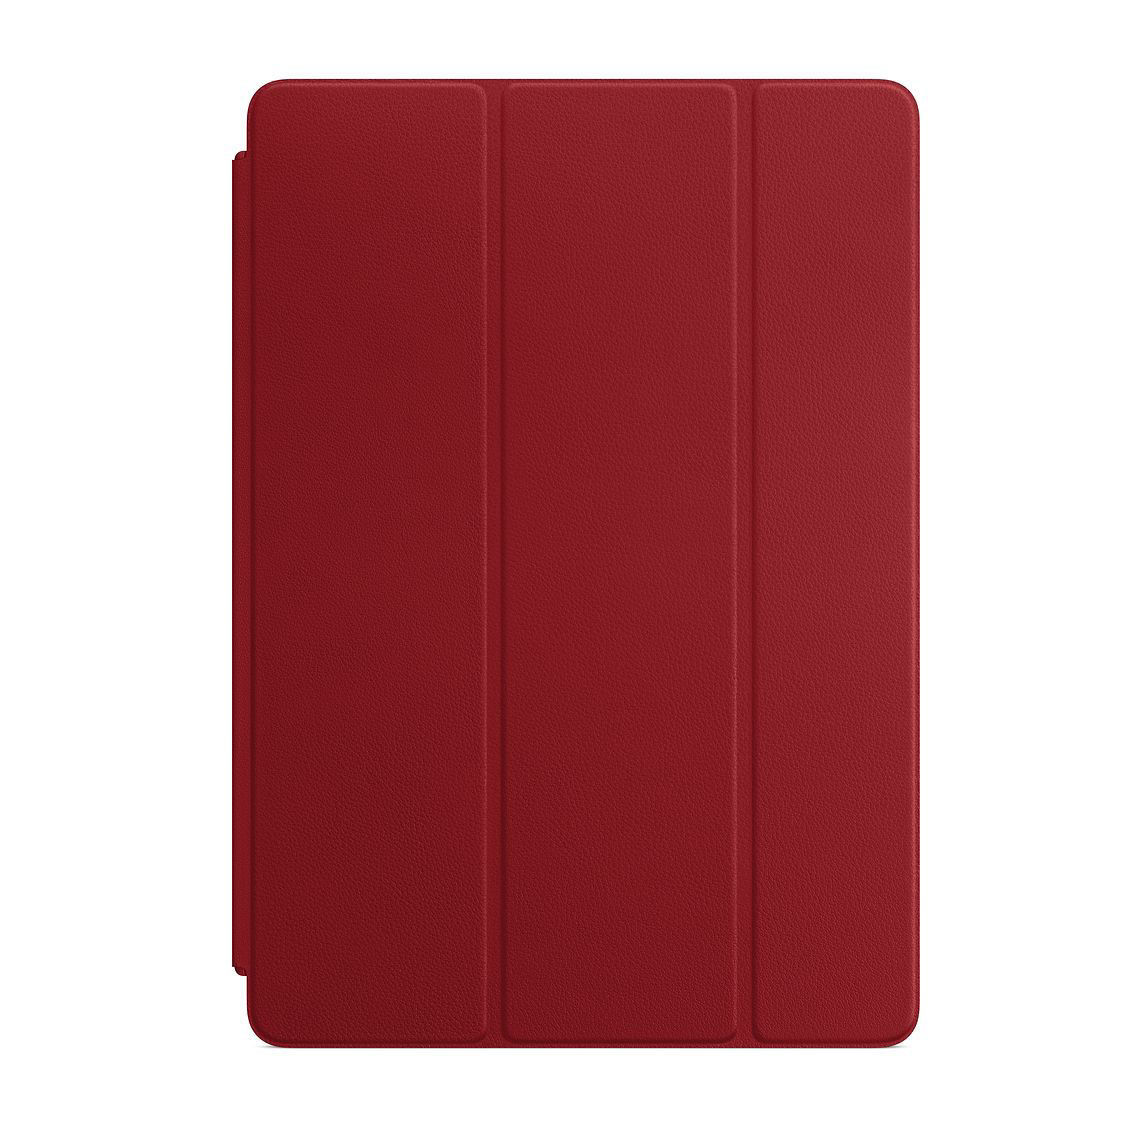 Picture of Apple Leather Smart Cover for iPad Pro 10.5-inch